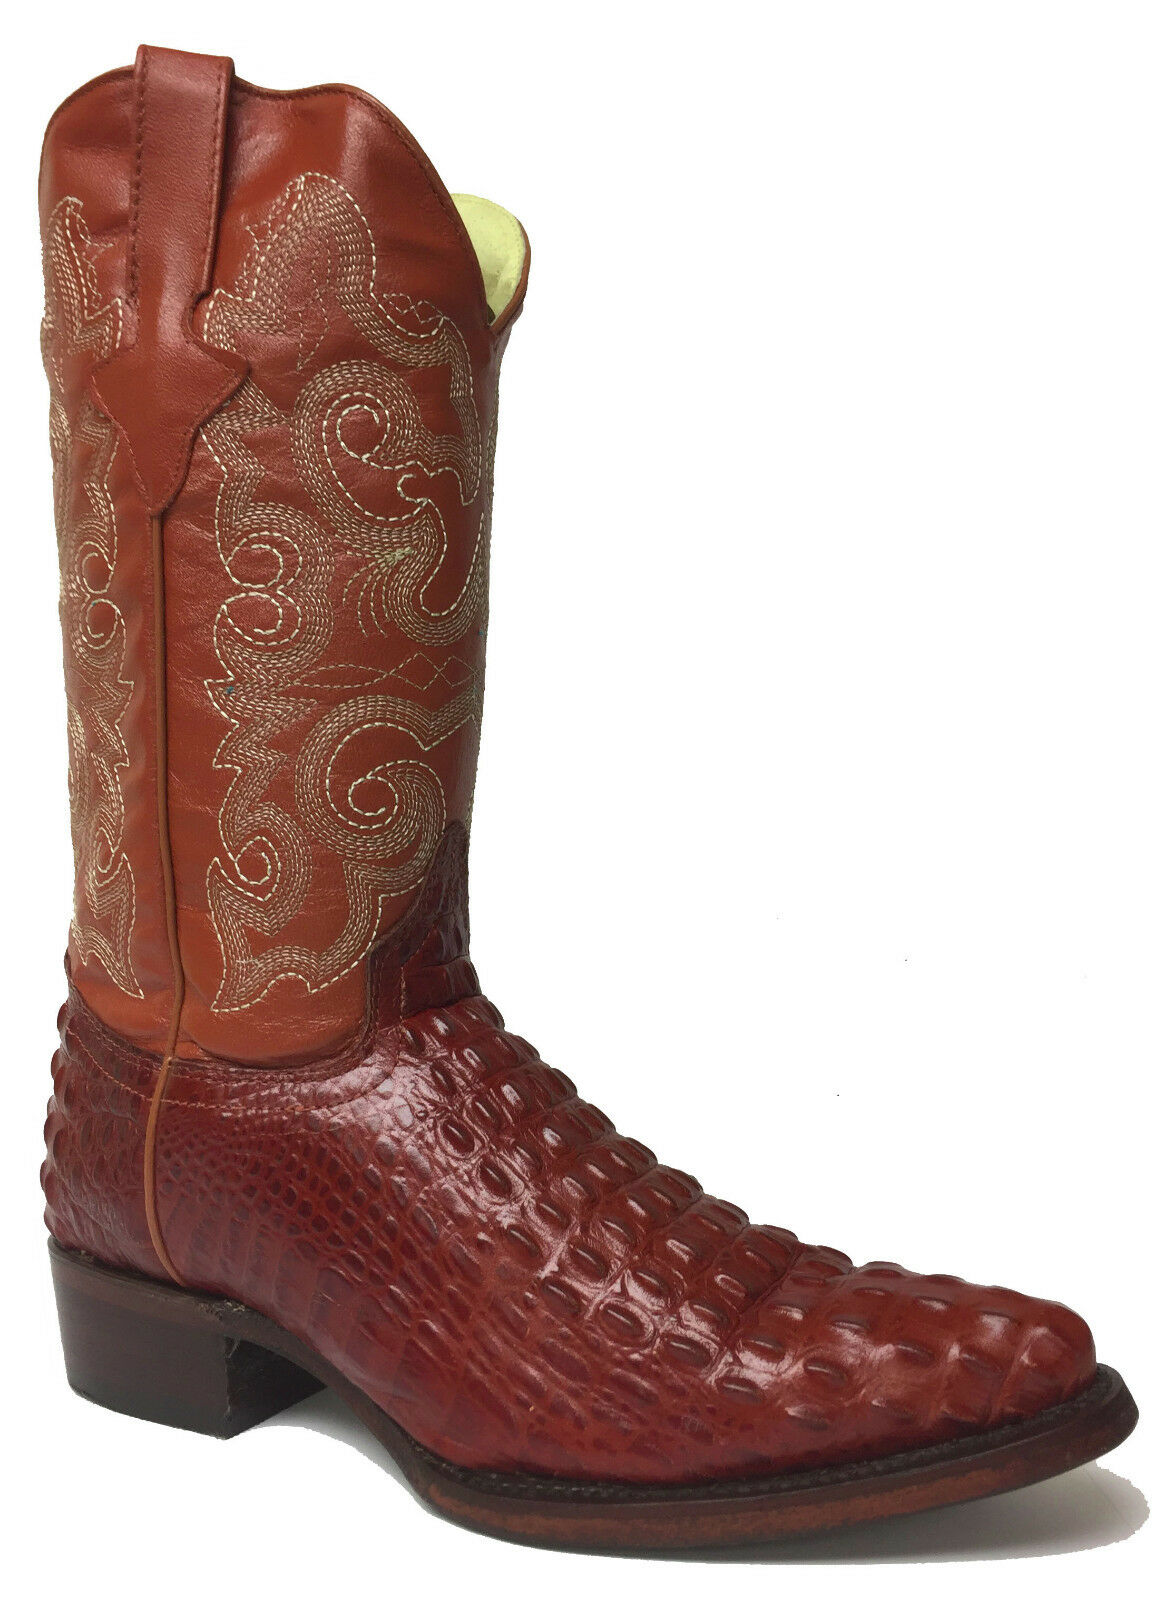 New Mens Cognac Brown Crocodile Alligator Leather Western Cowboy Boots J Toe